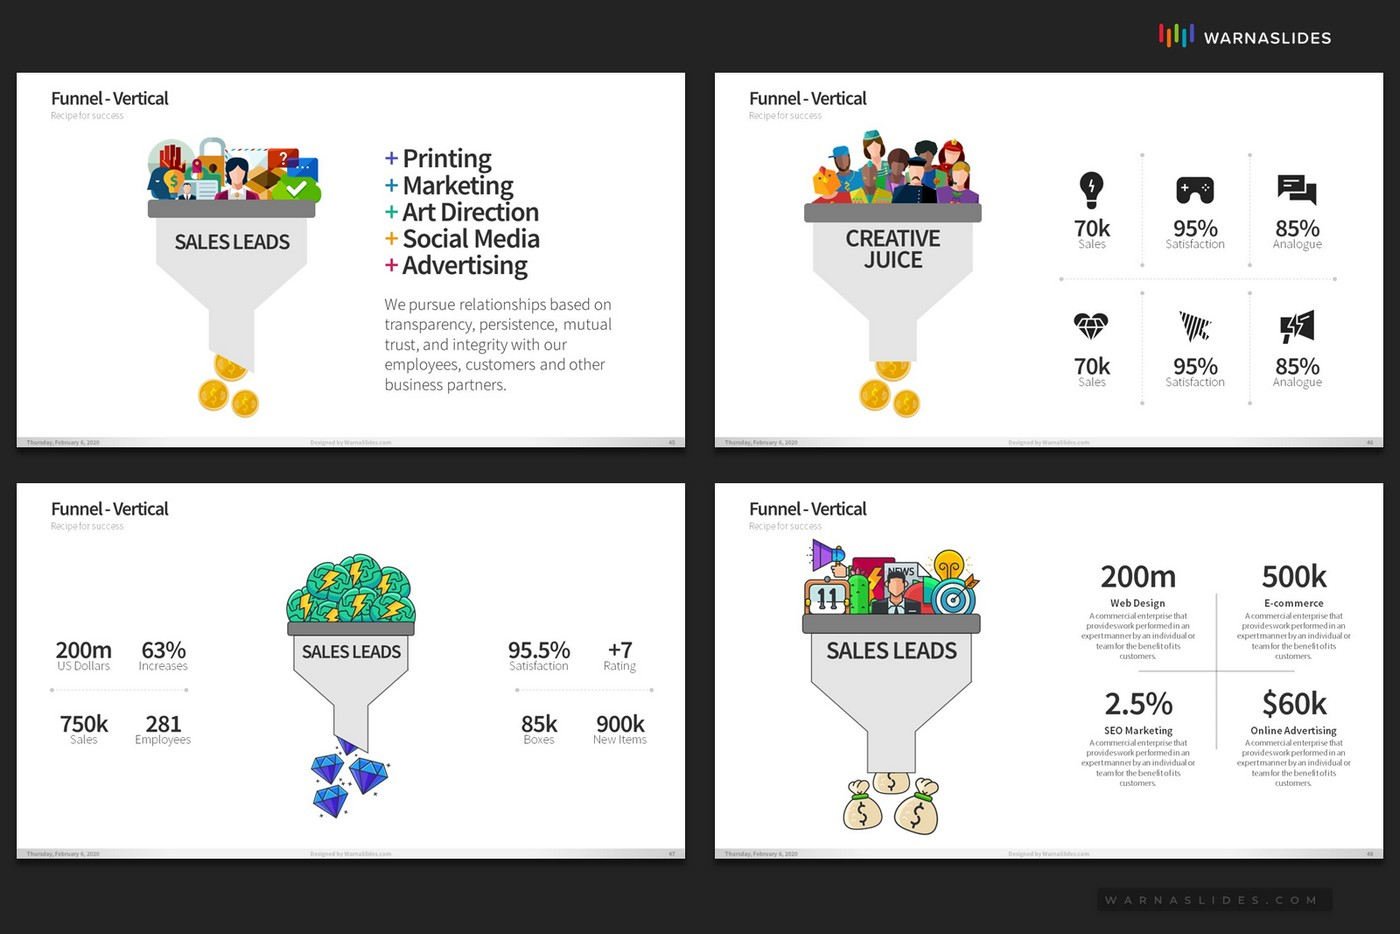 Funnel-Reverse-Funnel-Diagram-PowerPoint-Template-for-Business-Pitch-Deck-Professional-Creative-PowerPoint-Icons-013